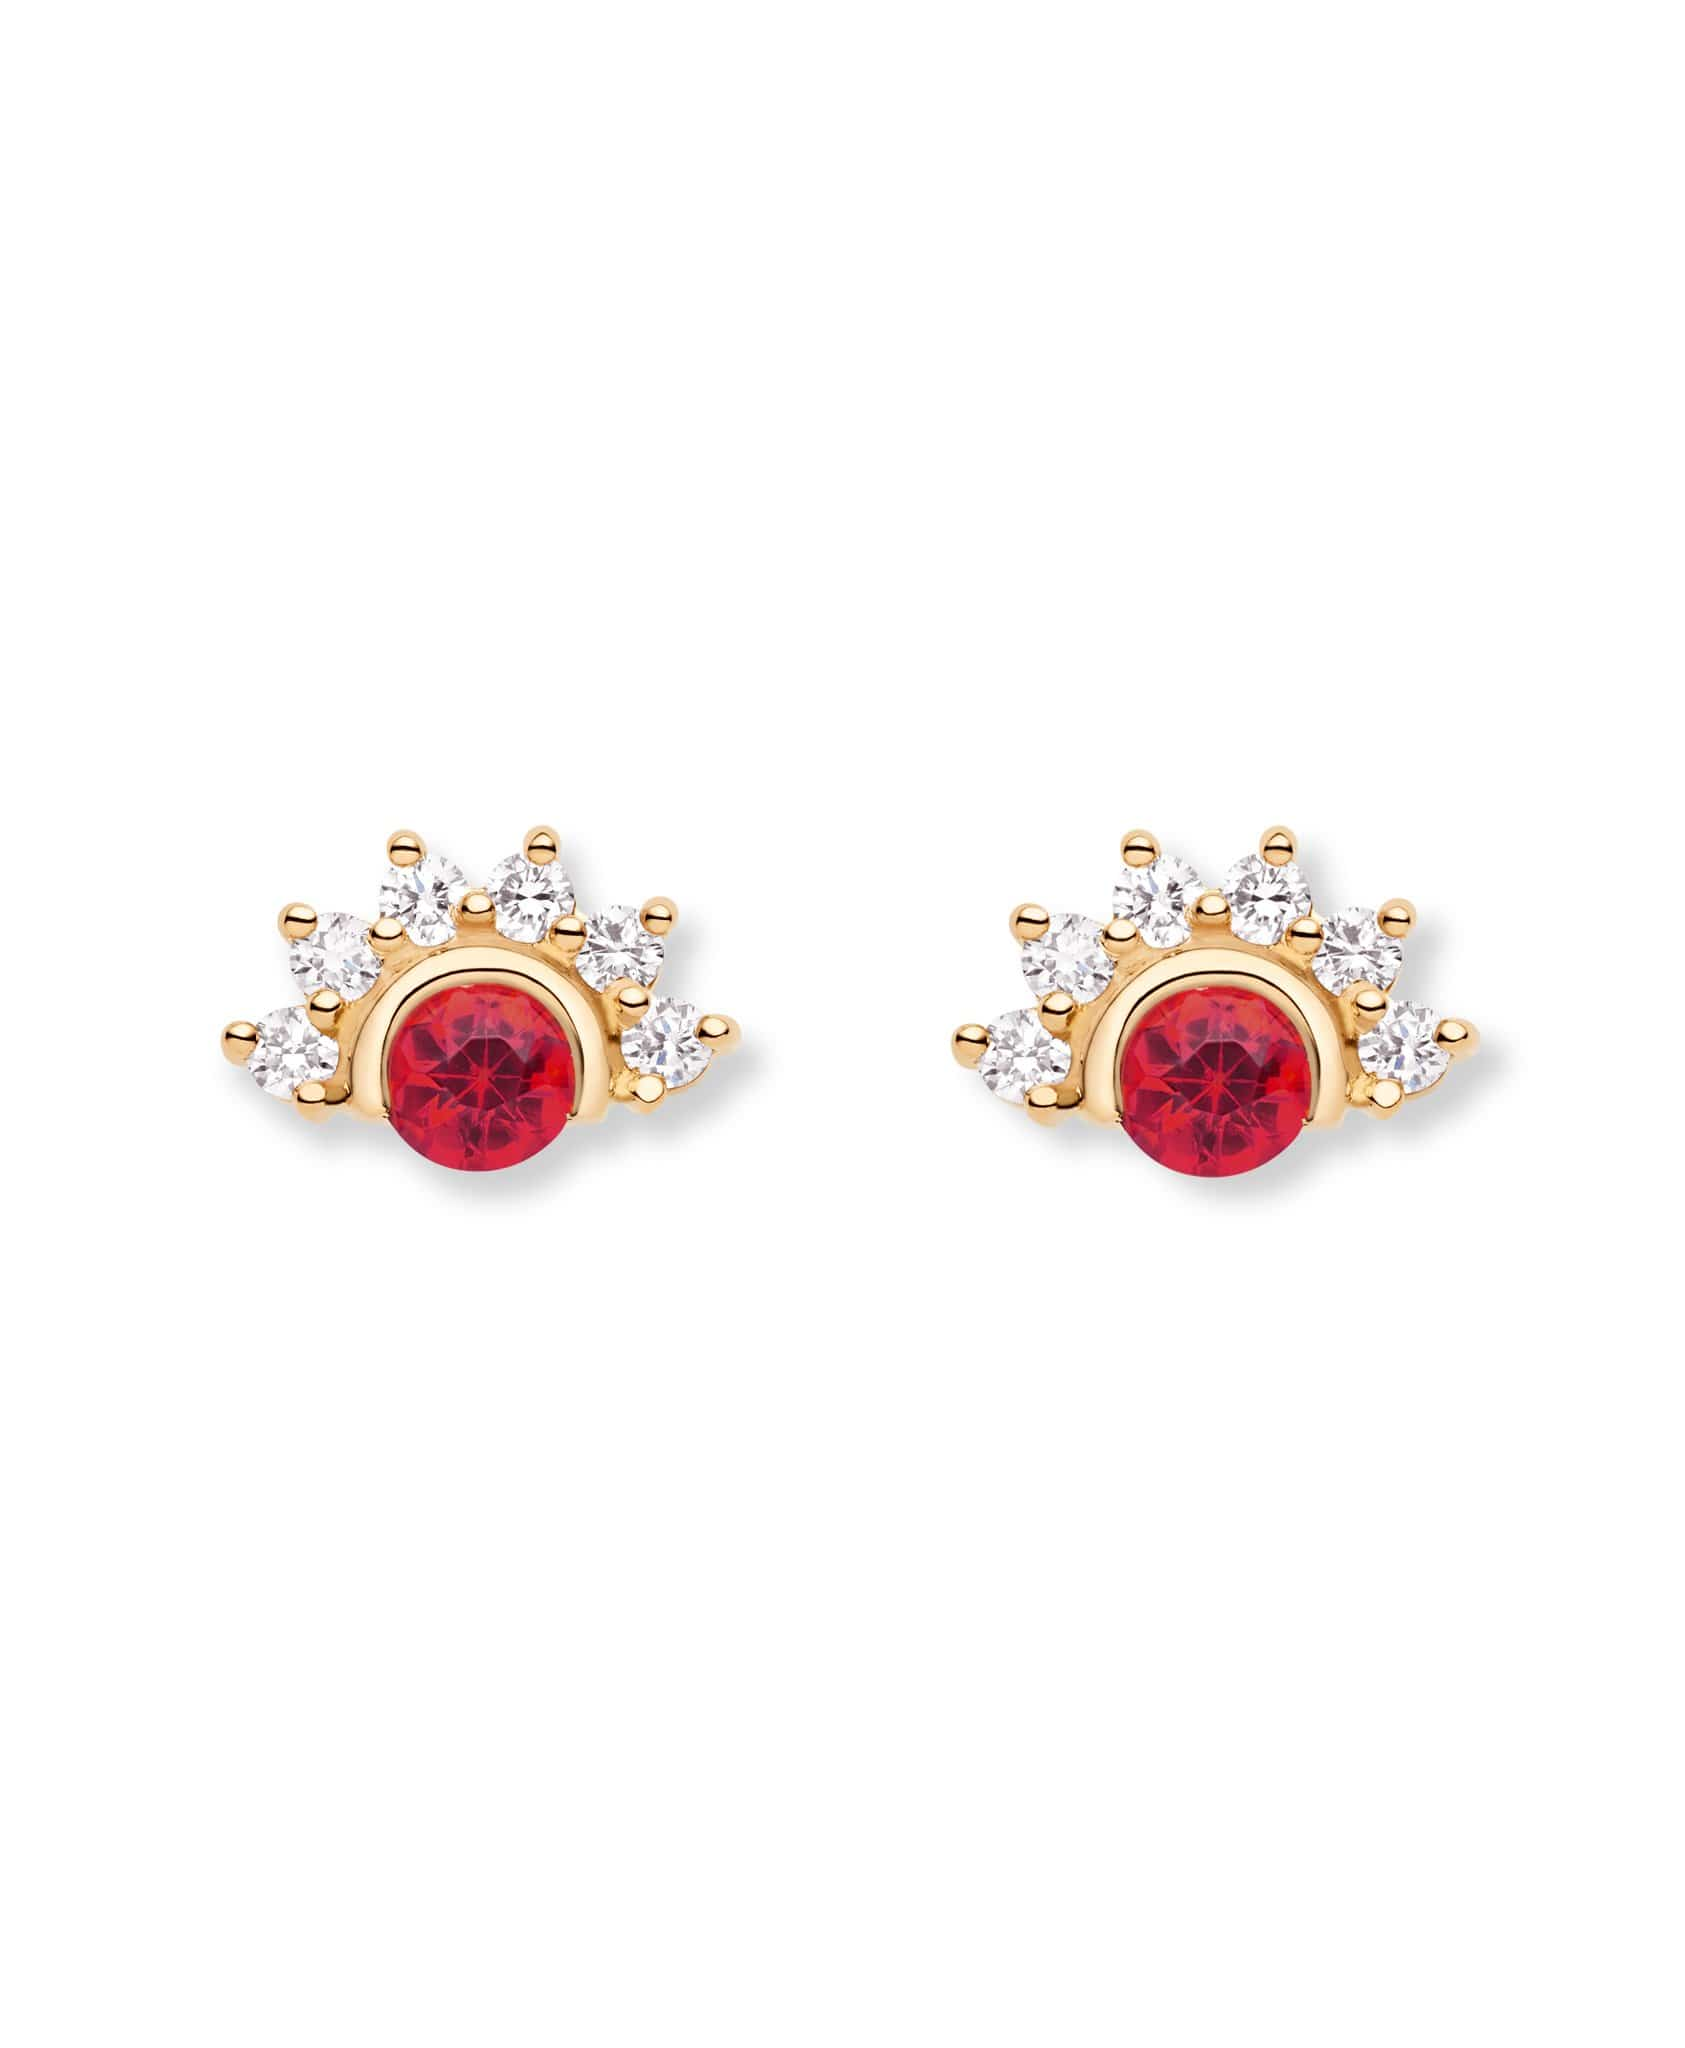 Red Spinel Studs: Discover Luxury Fine Jewelry | Nouvel Heritage || Rose Gold